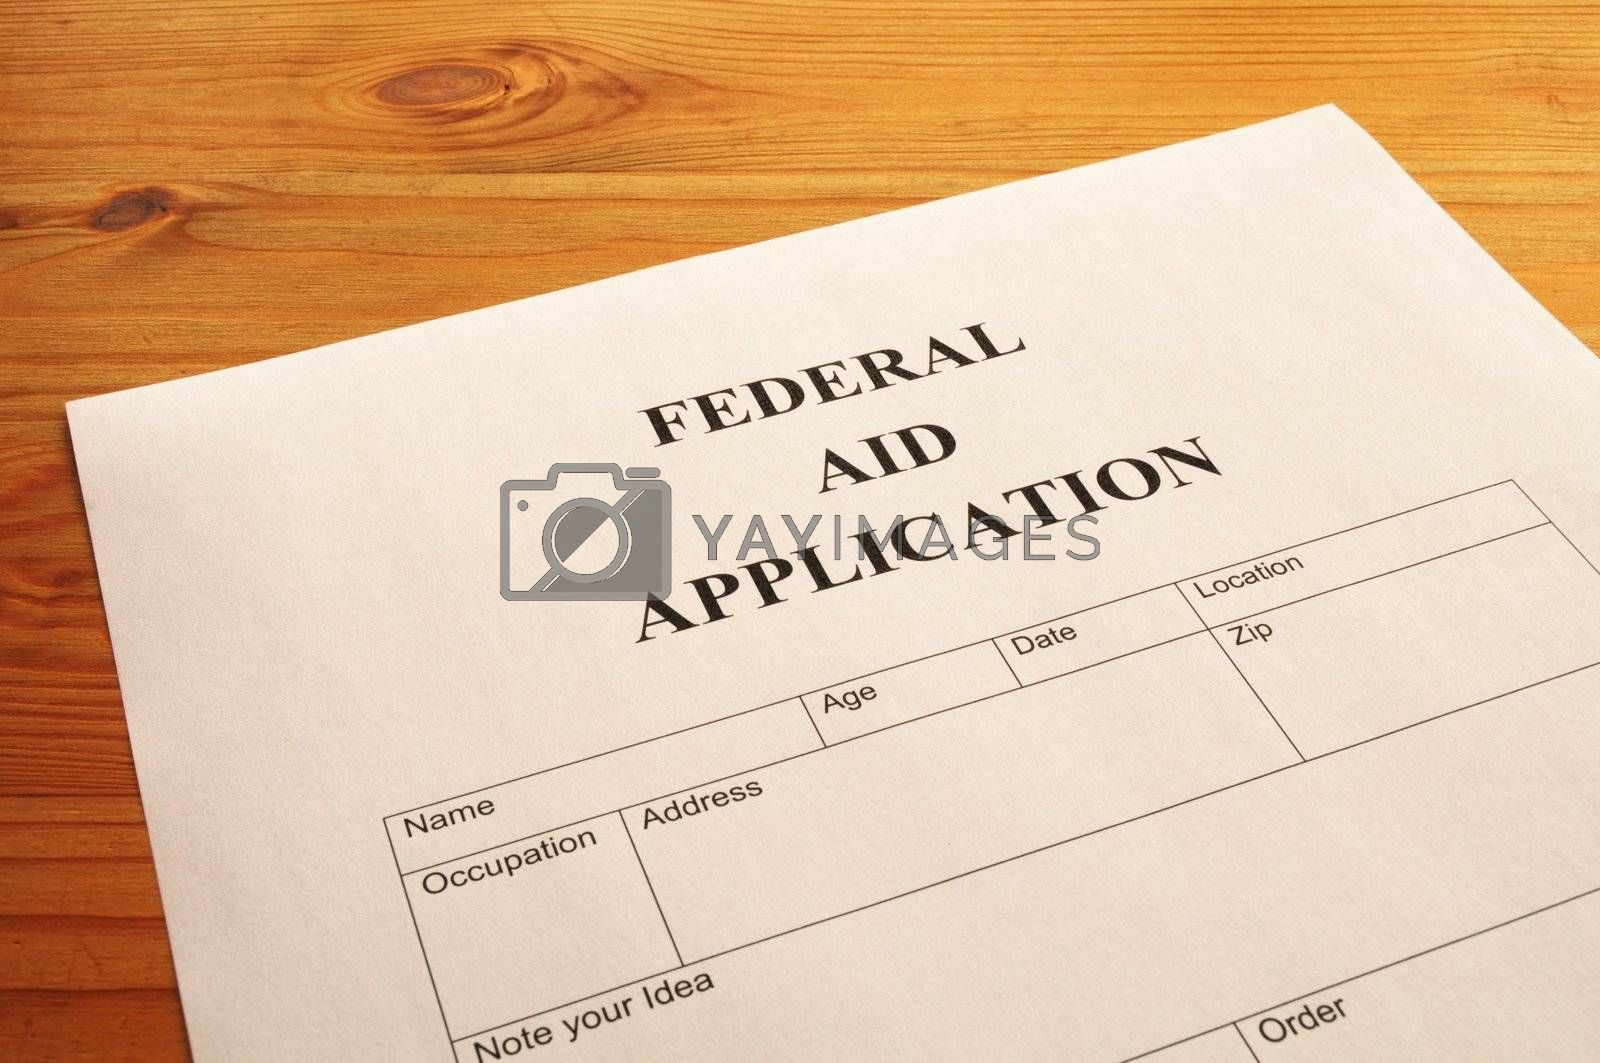 federal aid application for showing social security concept